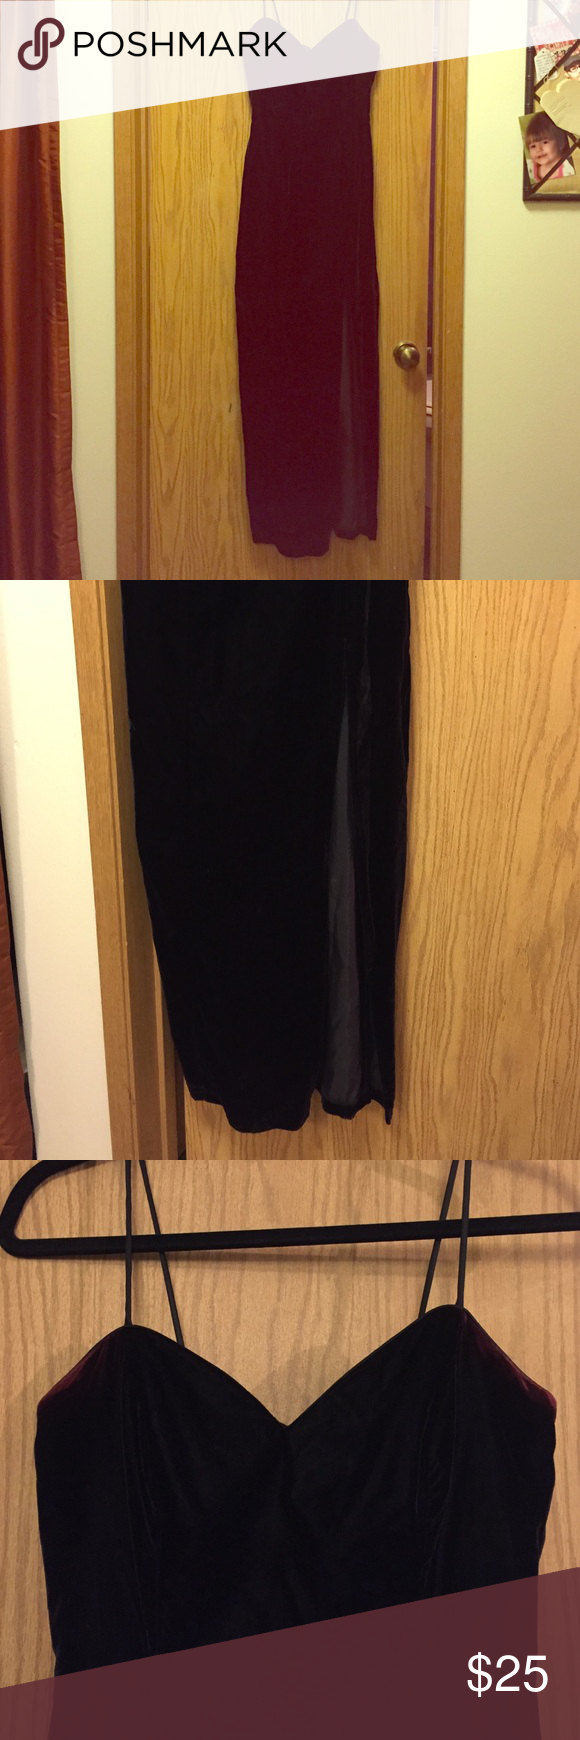 Full length black velvet dress Formal full length black velvet dress w/ side slit. It has spaghetti straps & back zipper closure. A little discoloration in the under arm area, looks dark red but not noticeable when being worn. It's still in good shape. LA Glo Dresses Prom